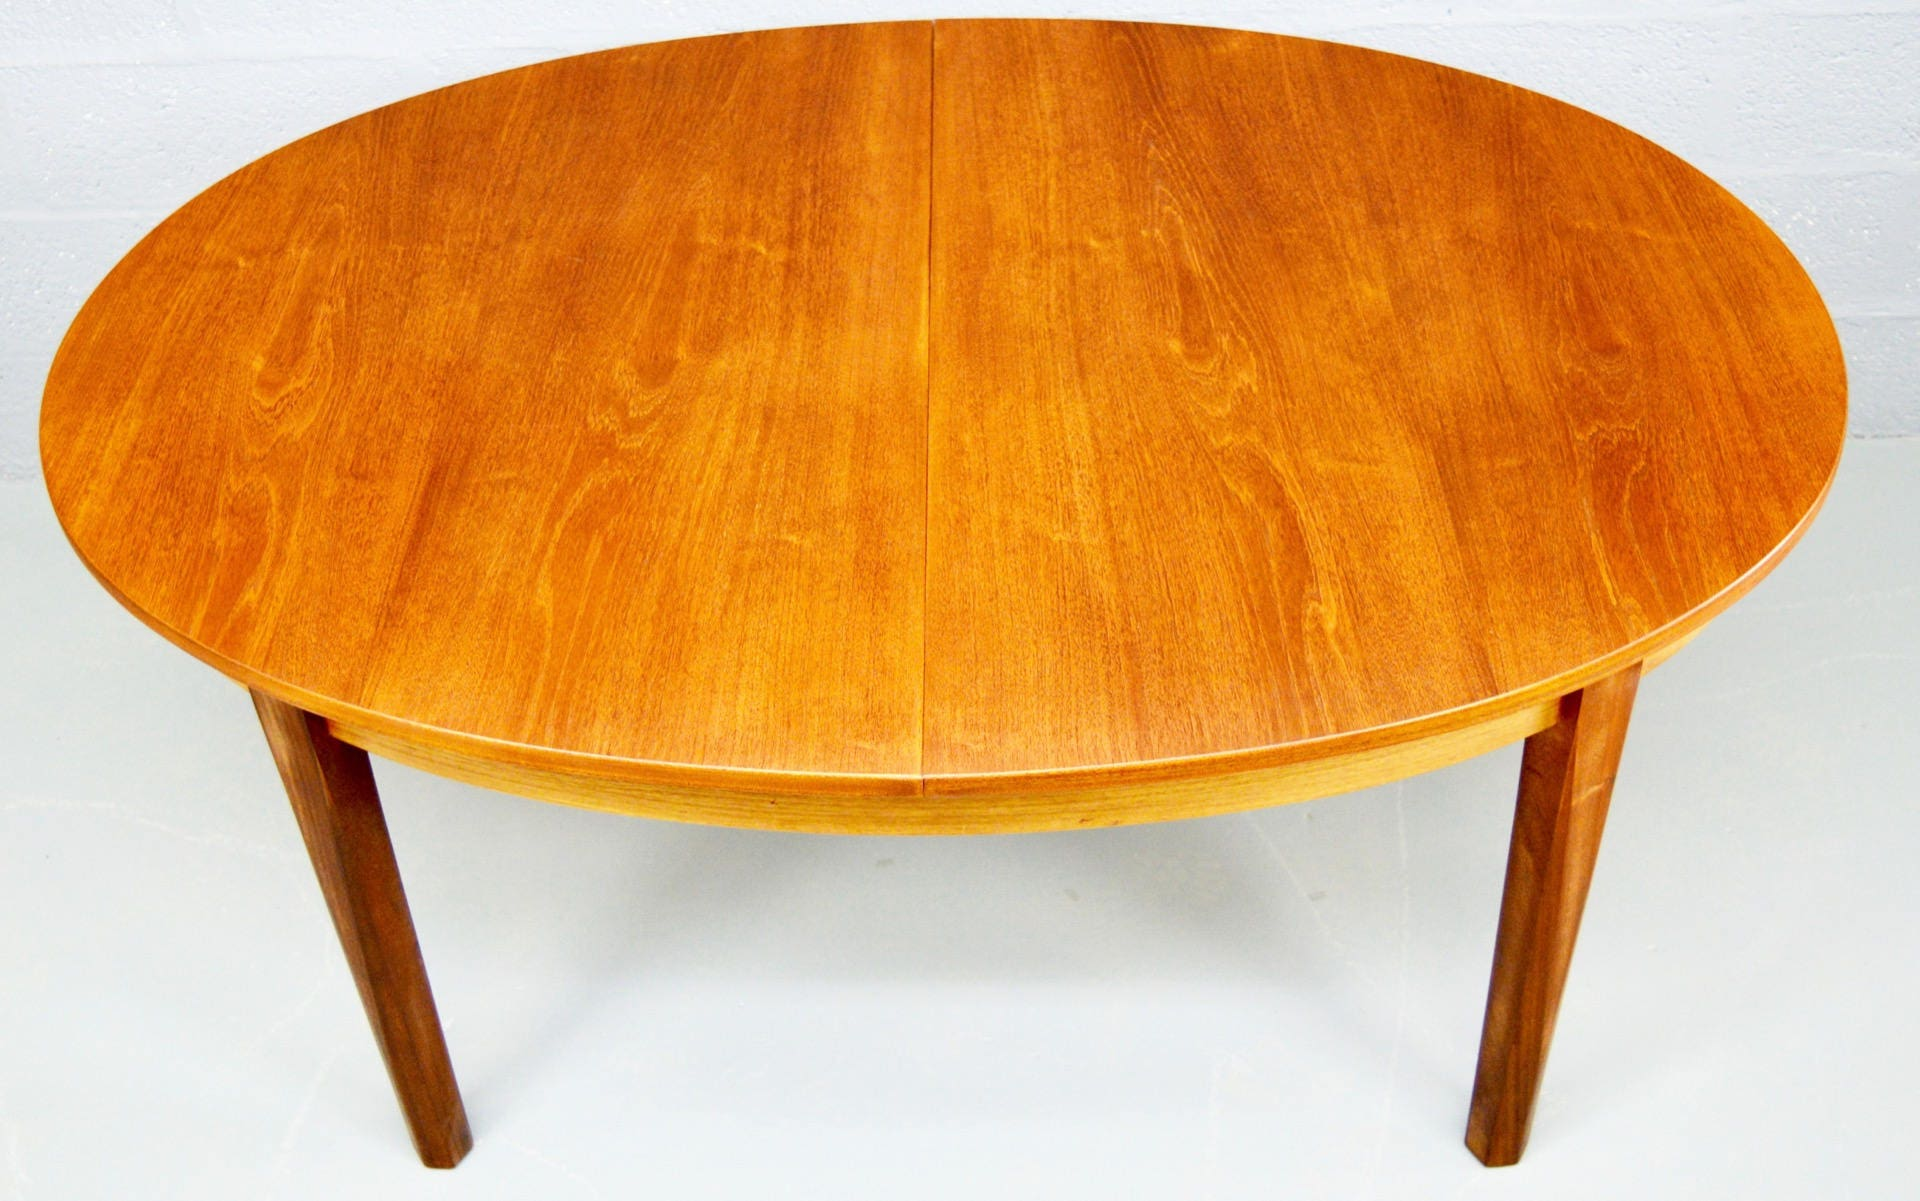 MidCentury Extendable Teak Dining Table by William Lawrence